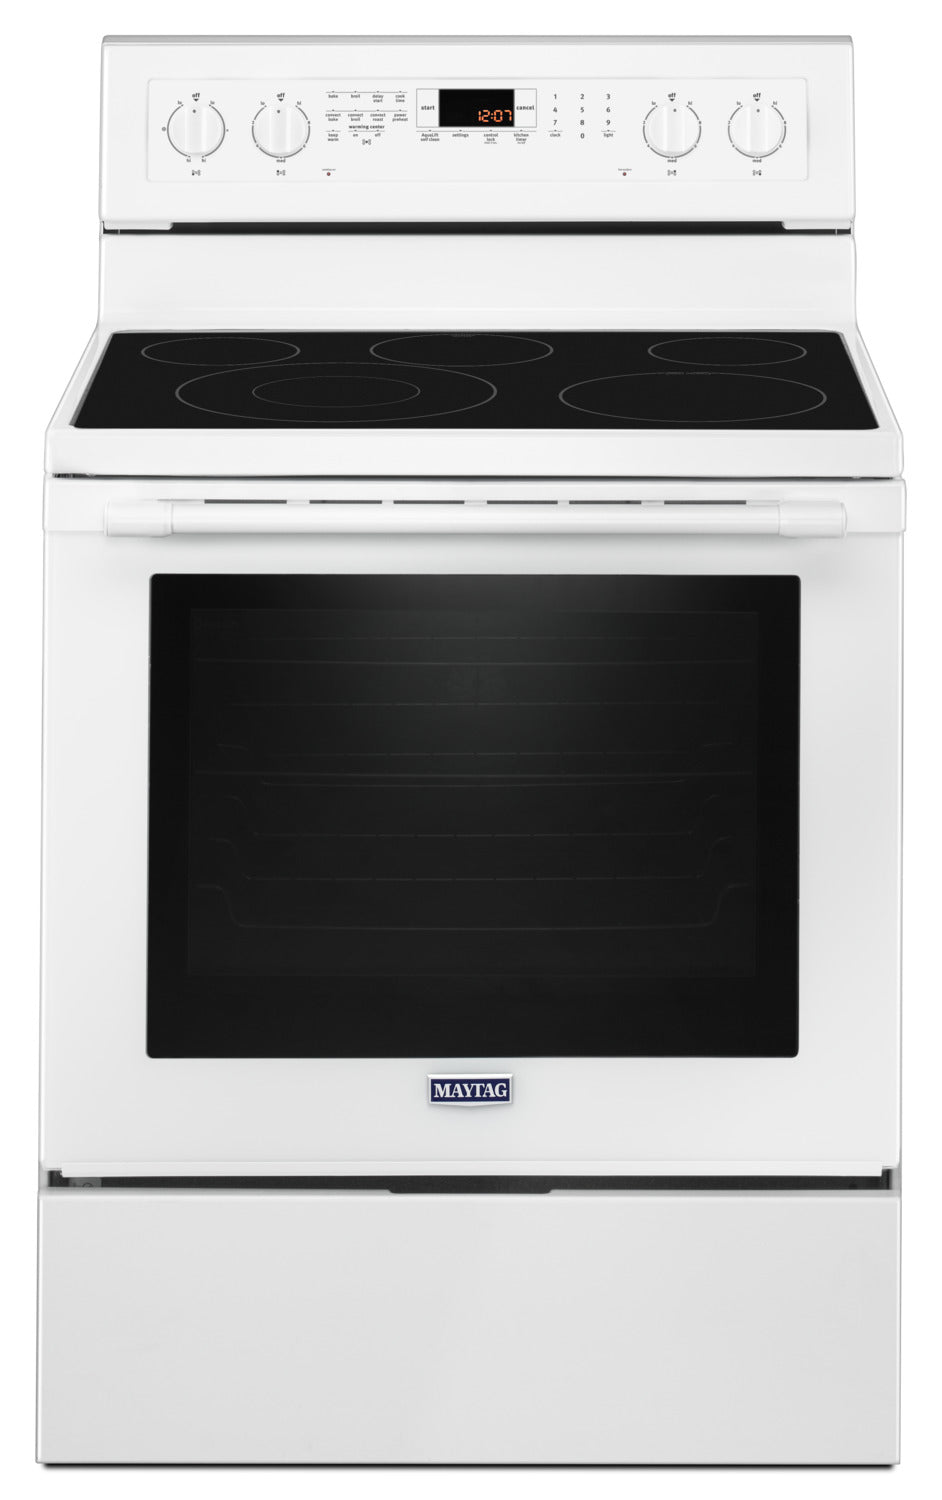 Maytag White Freestanding Electric Convection Range (6 4 Cu  Ft ) -  YMER8800FW